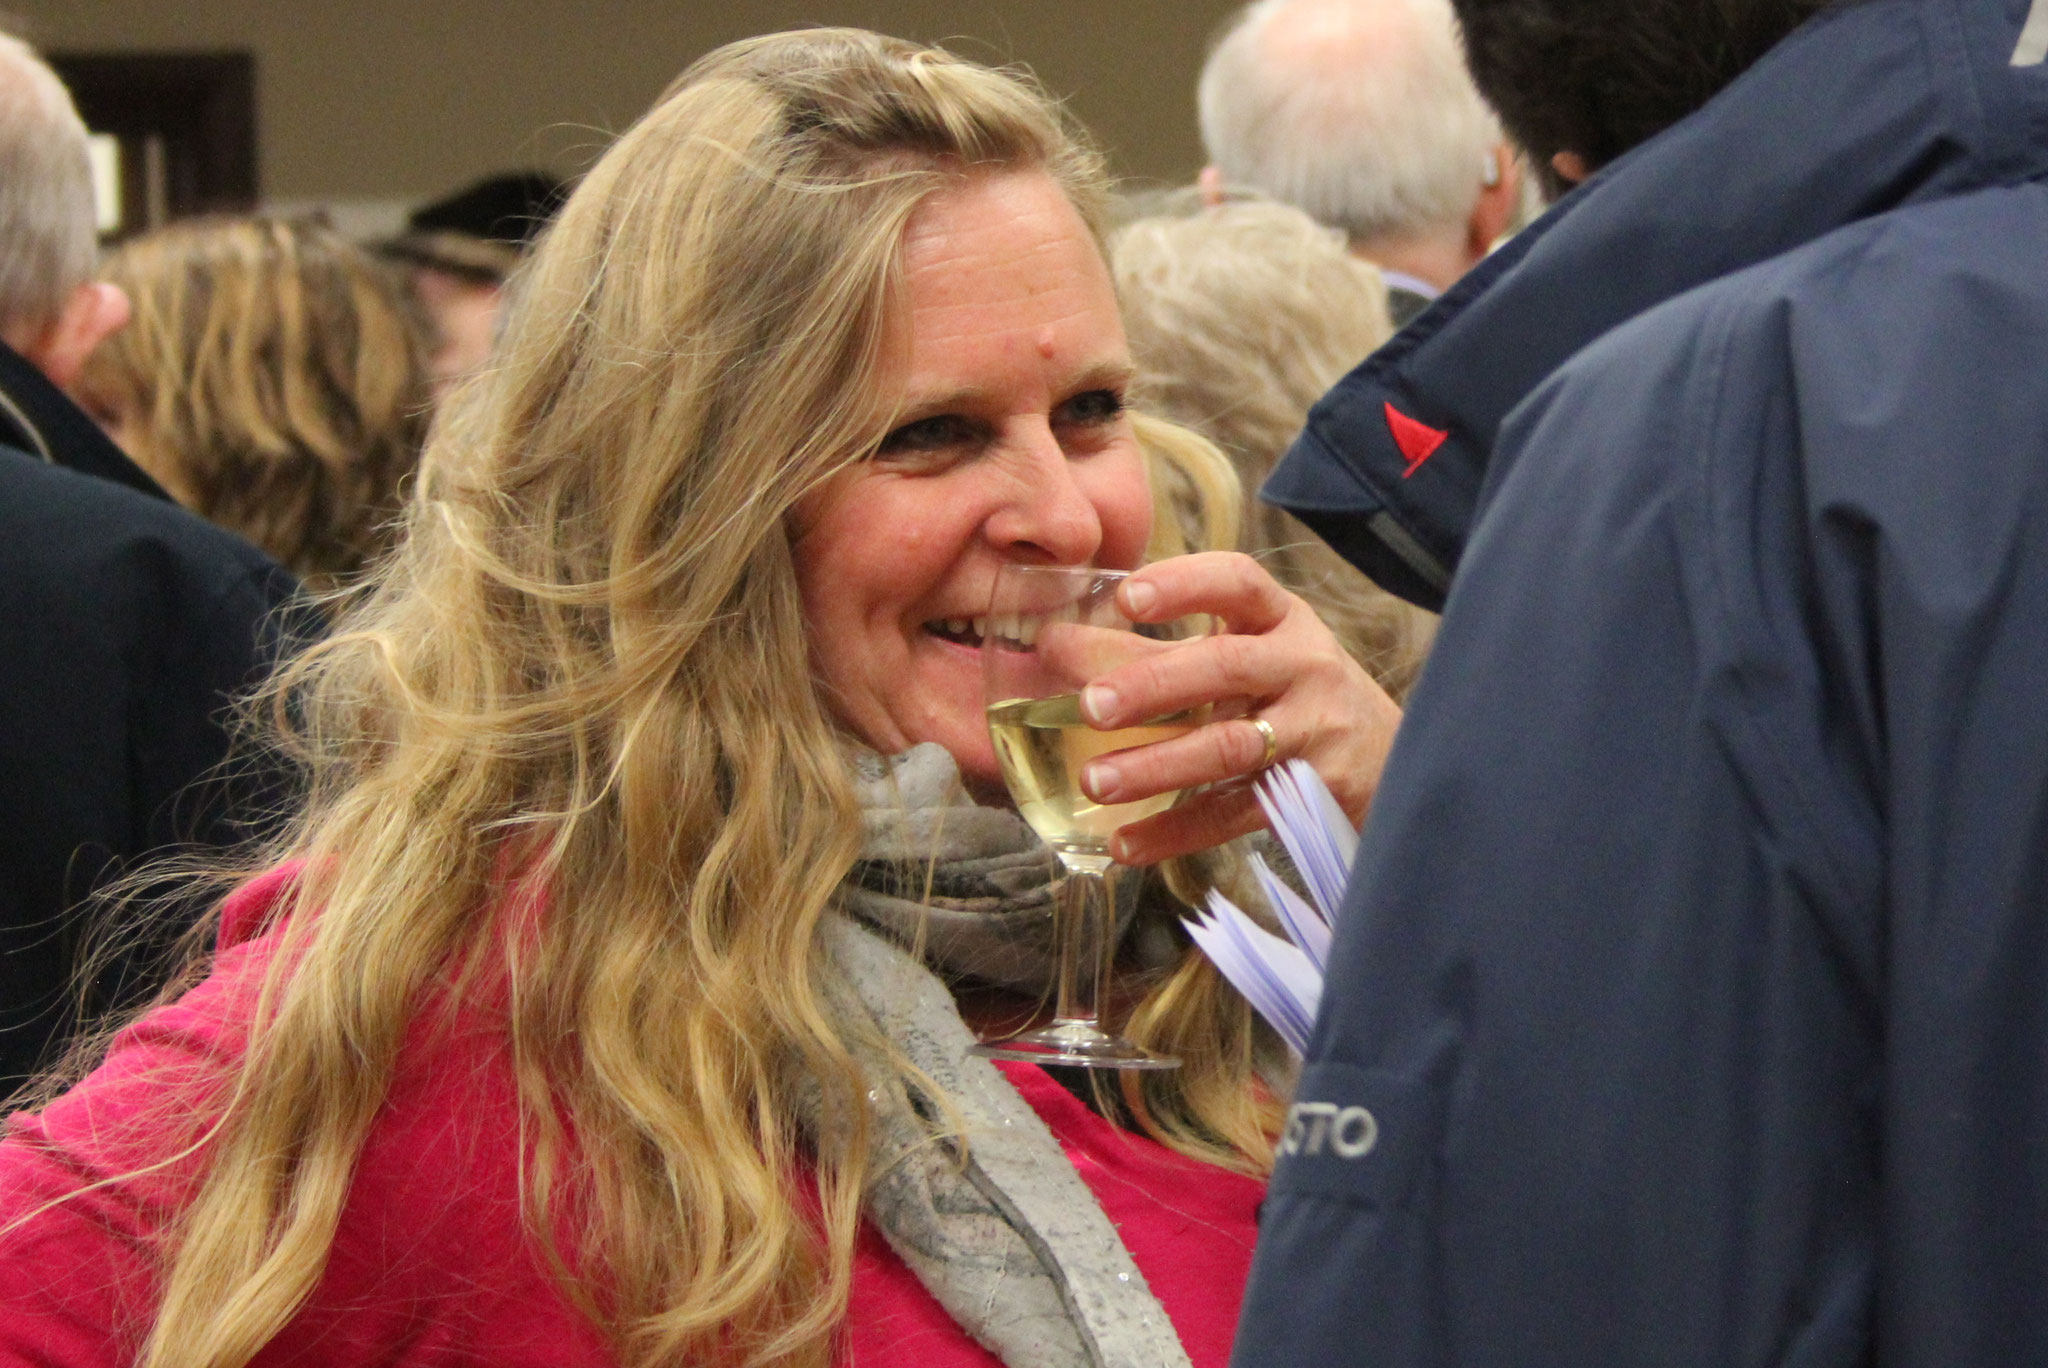 At the reception